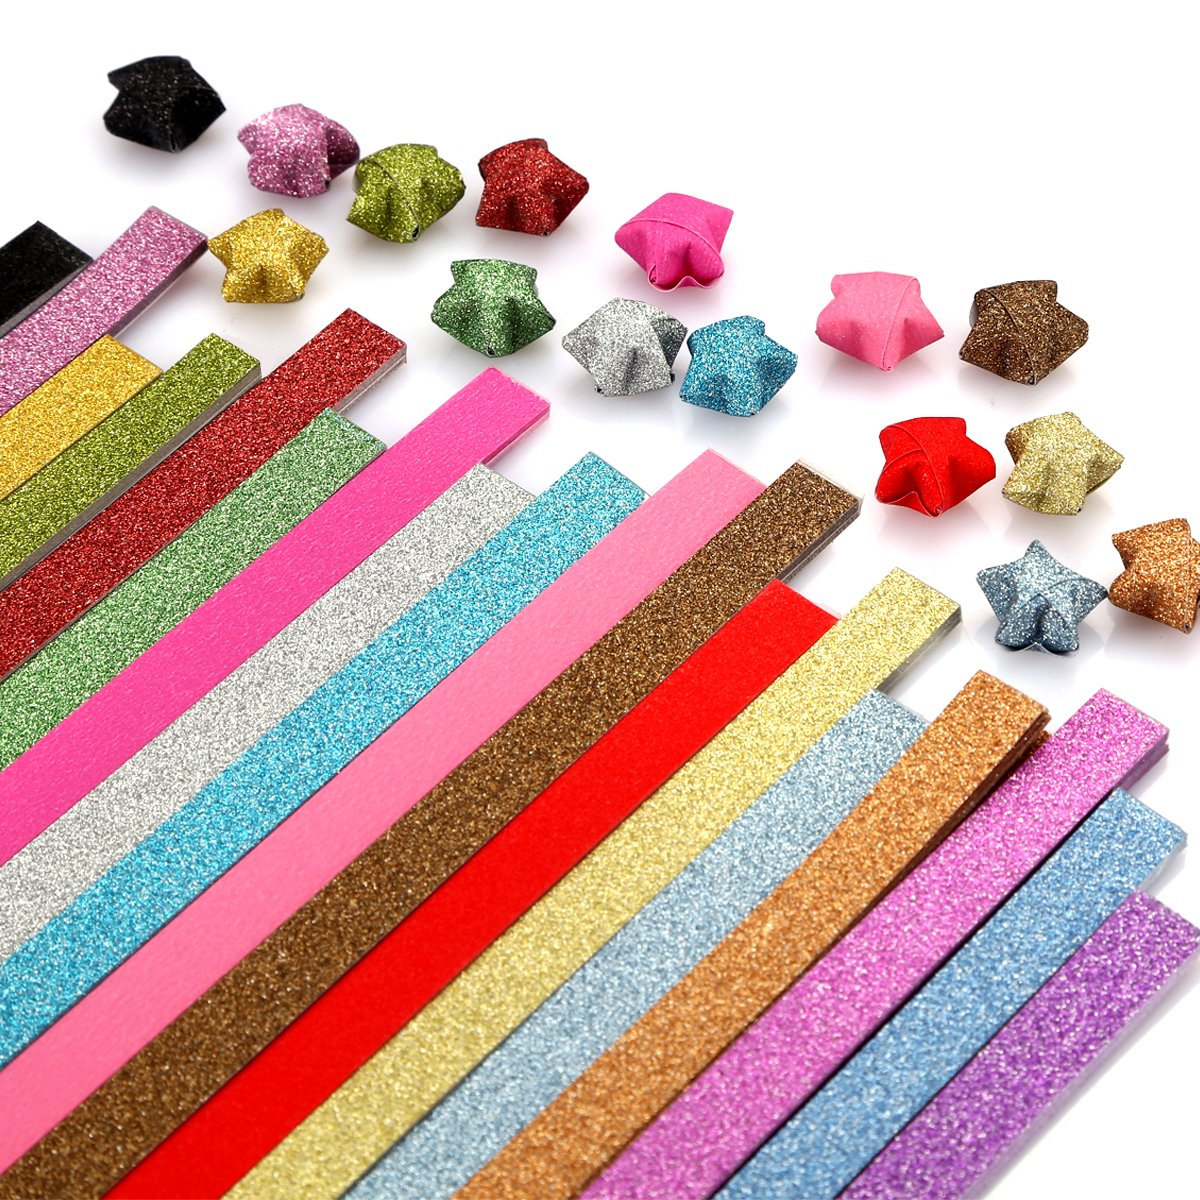 Caydo Glitter Origami Stars Paper Folding Strips - 18 Colors, 360 Sheets 4336880700